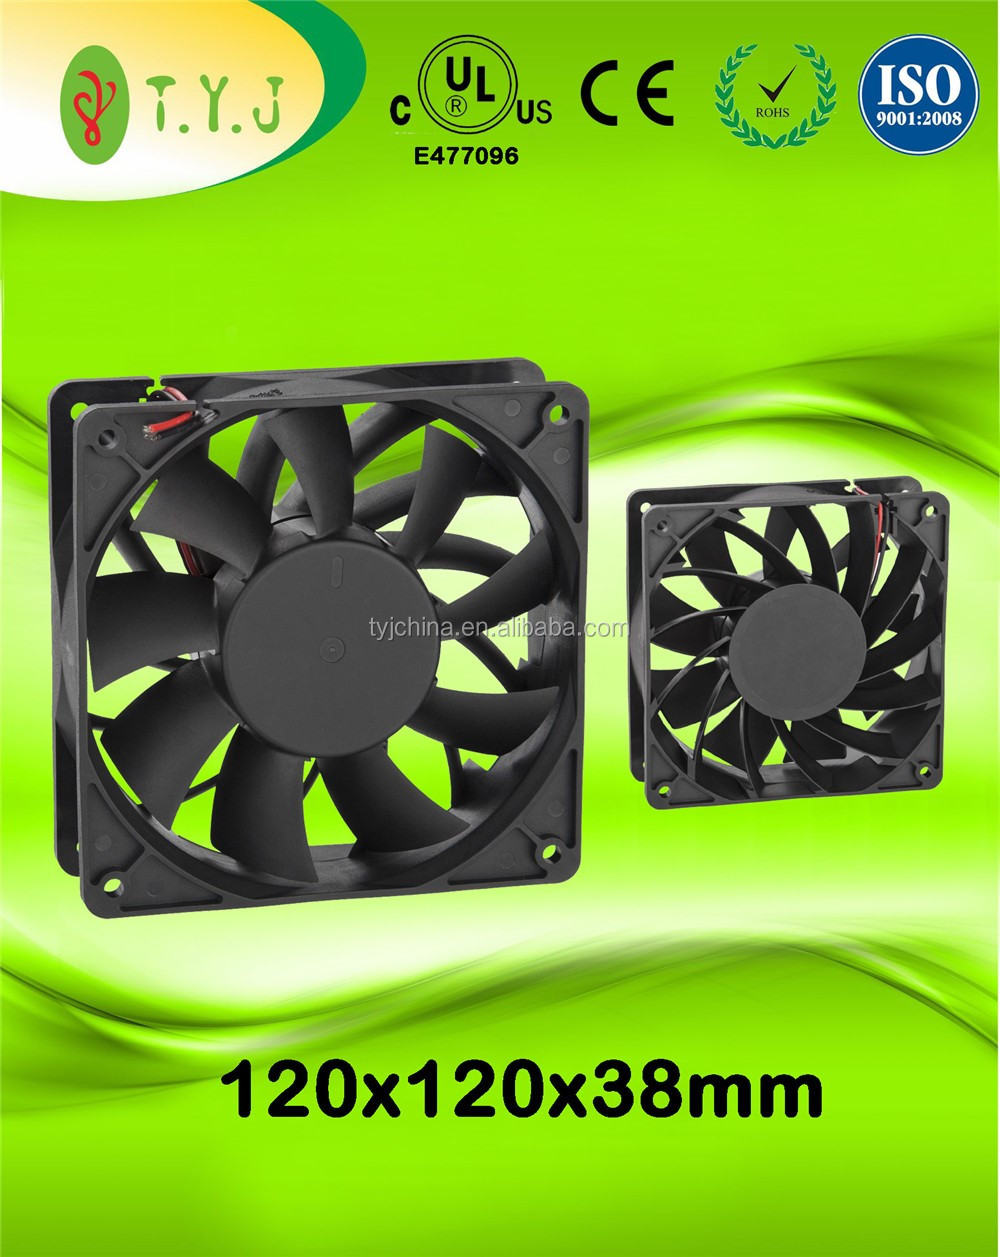 24v SUPER HIGH air flow and pressure 120x120x38mm dc cooling fan (Model C)